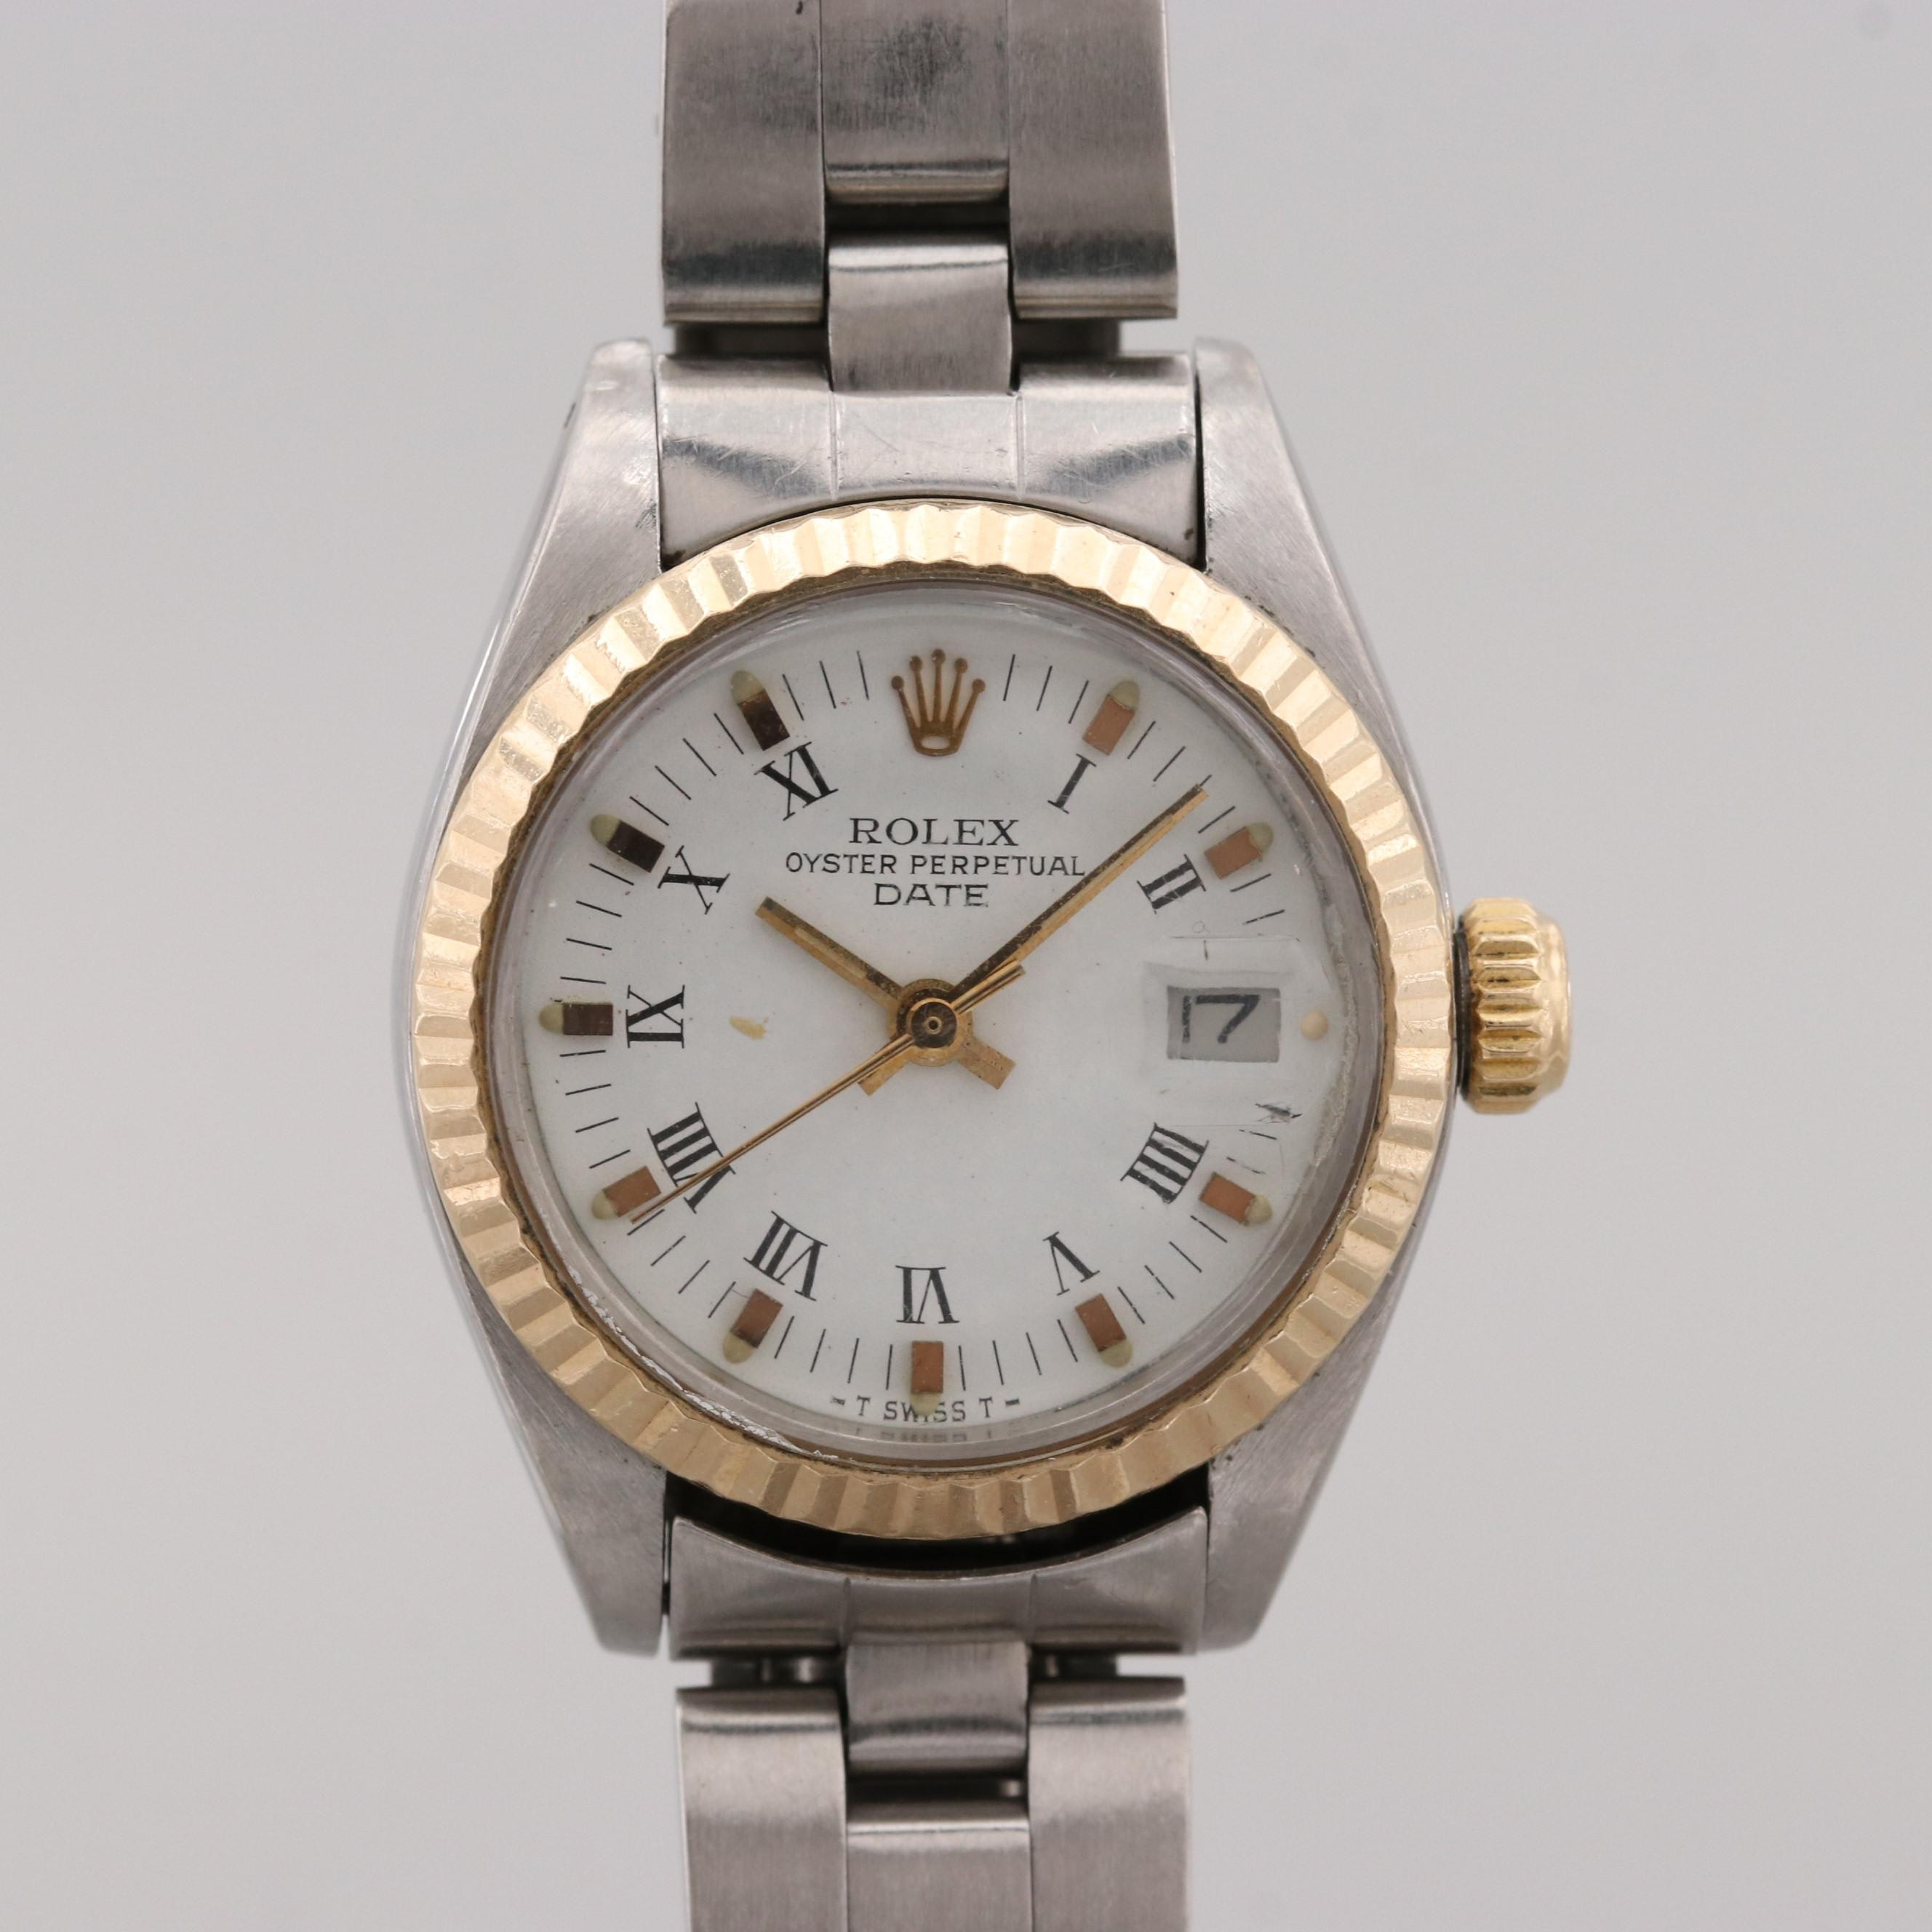 Rolex Oyster Perpetual Stainless Steel and 18K Gold Automatic Wristwatch, 1981